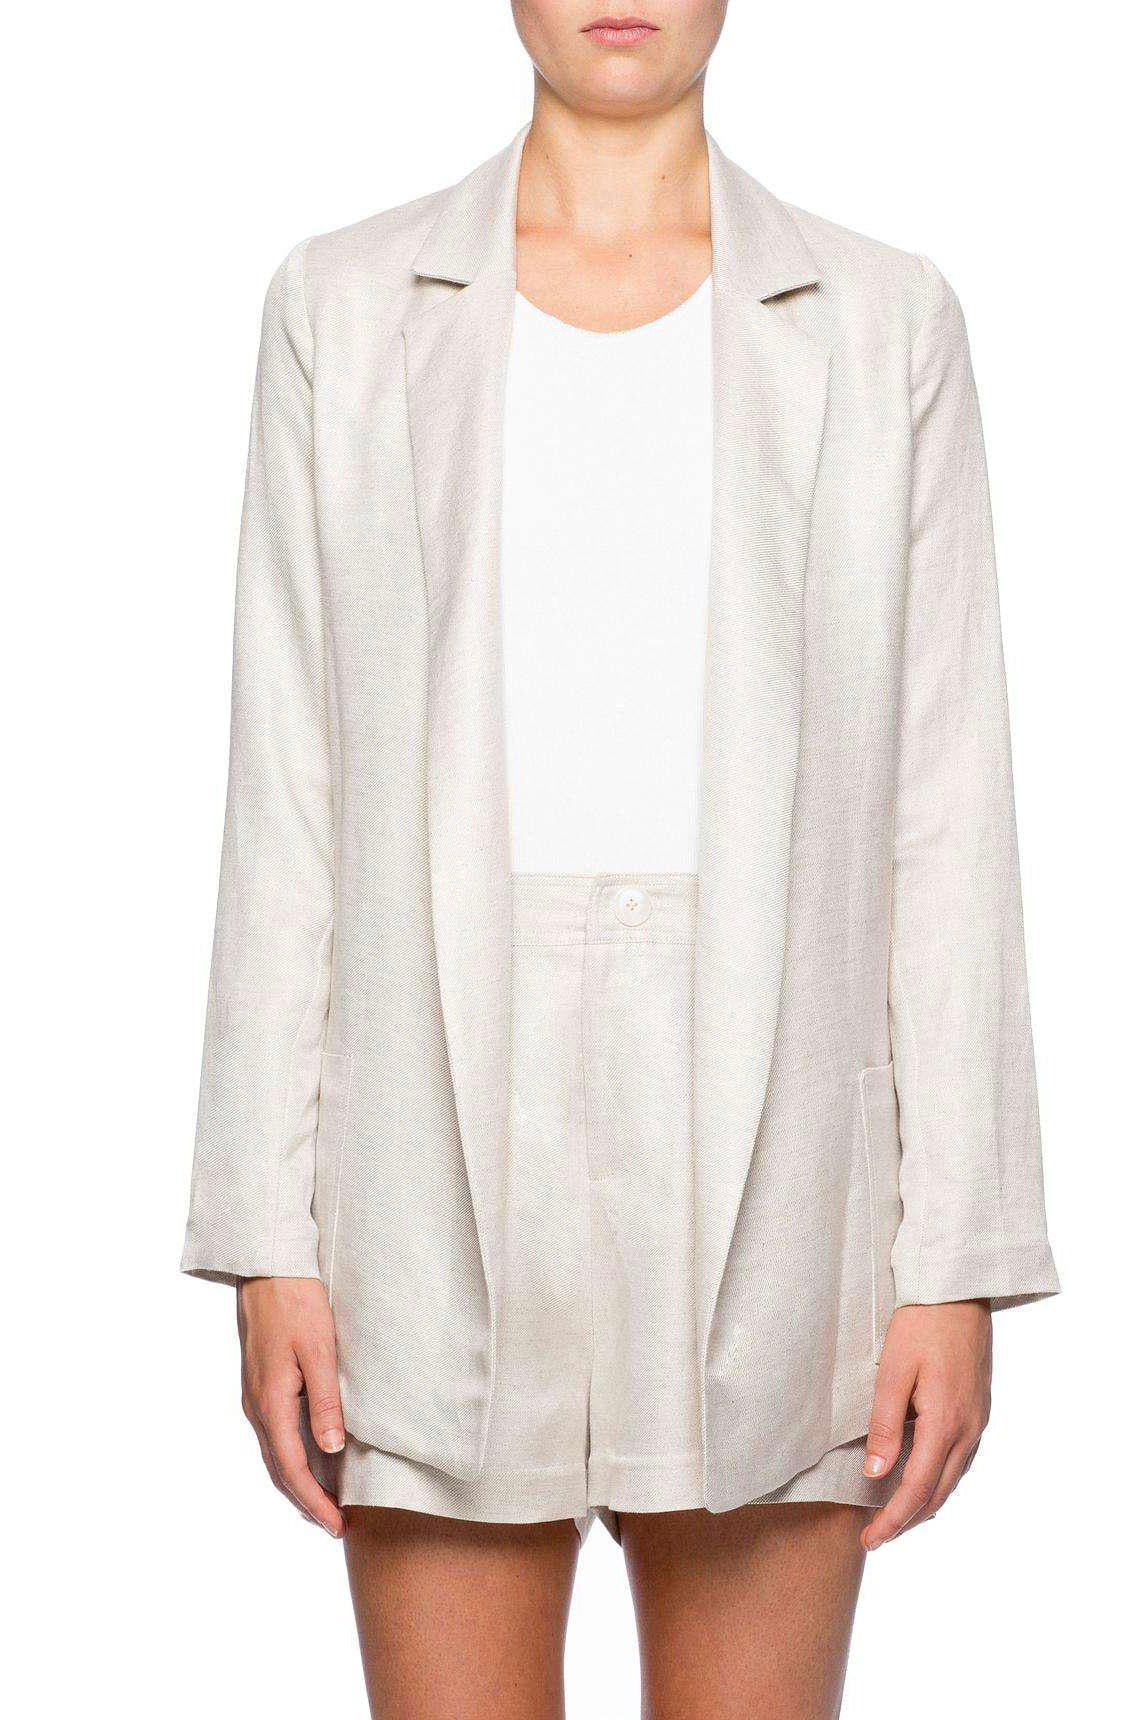 Viktoria and Woods Testament Blazer - Beige